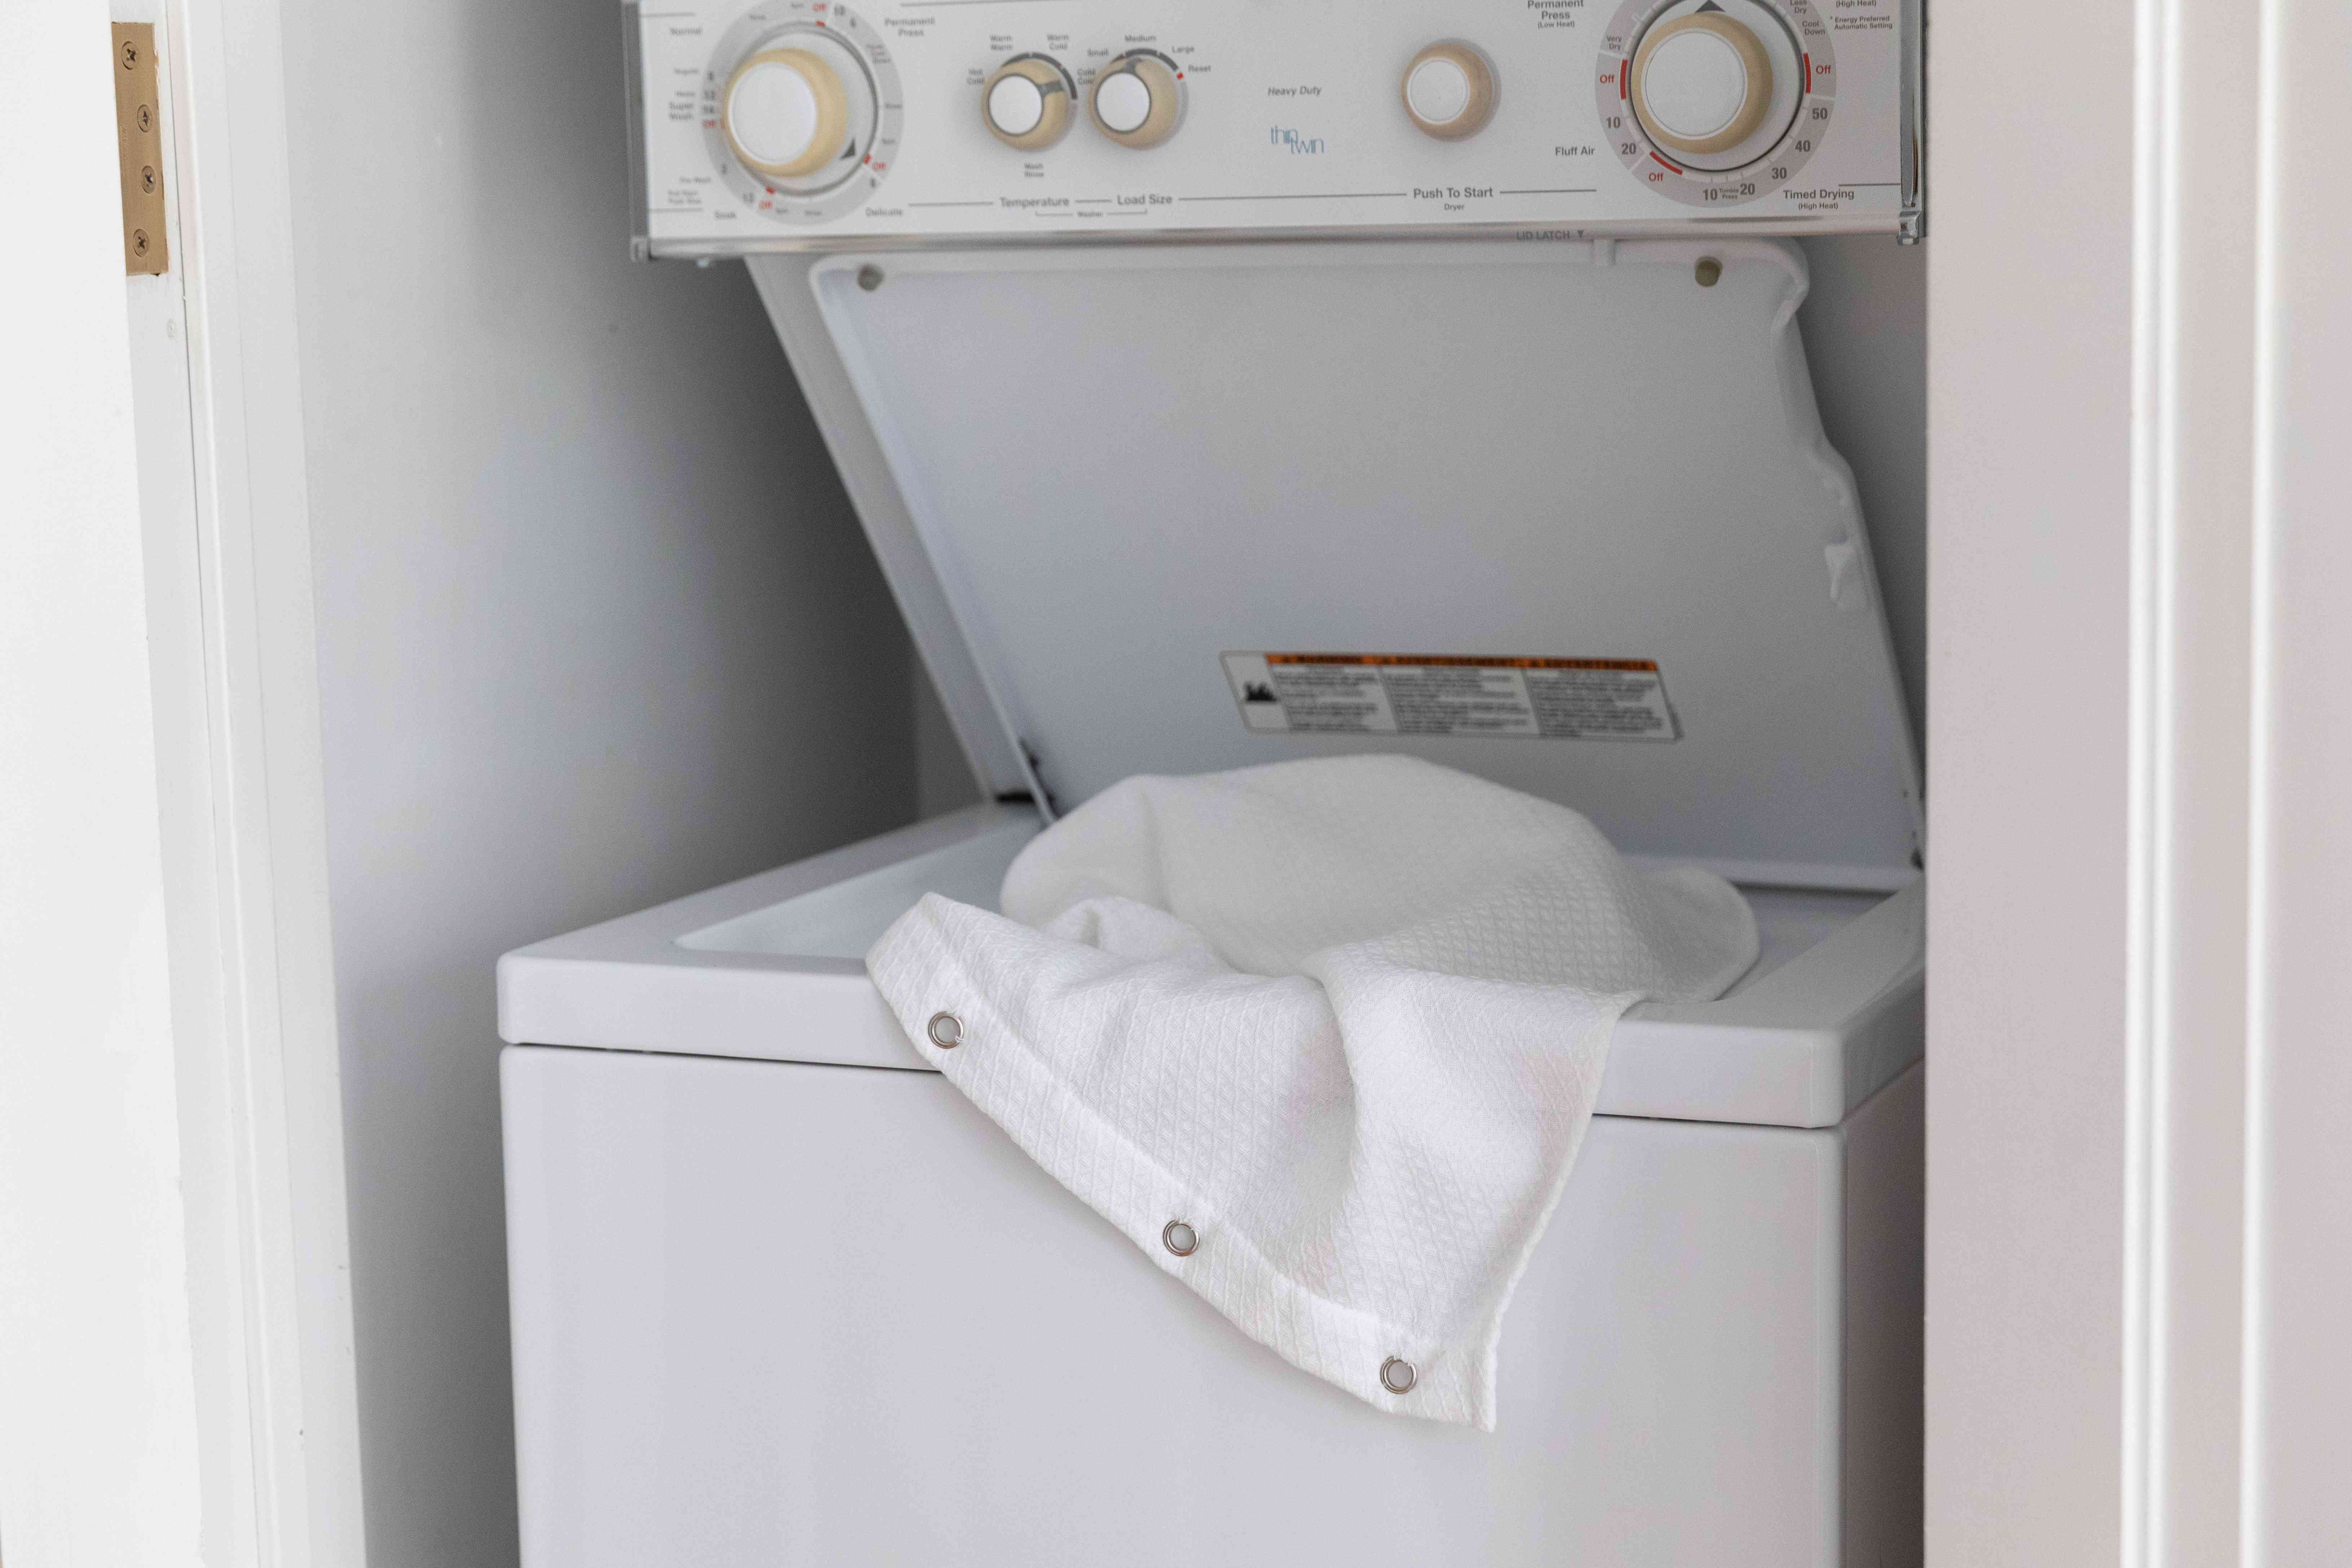 Shower curtain and liner placed in washing machine to prevent pink growth